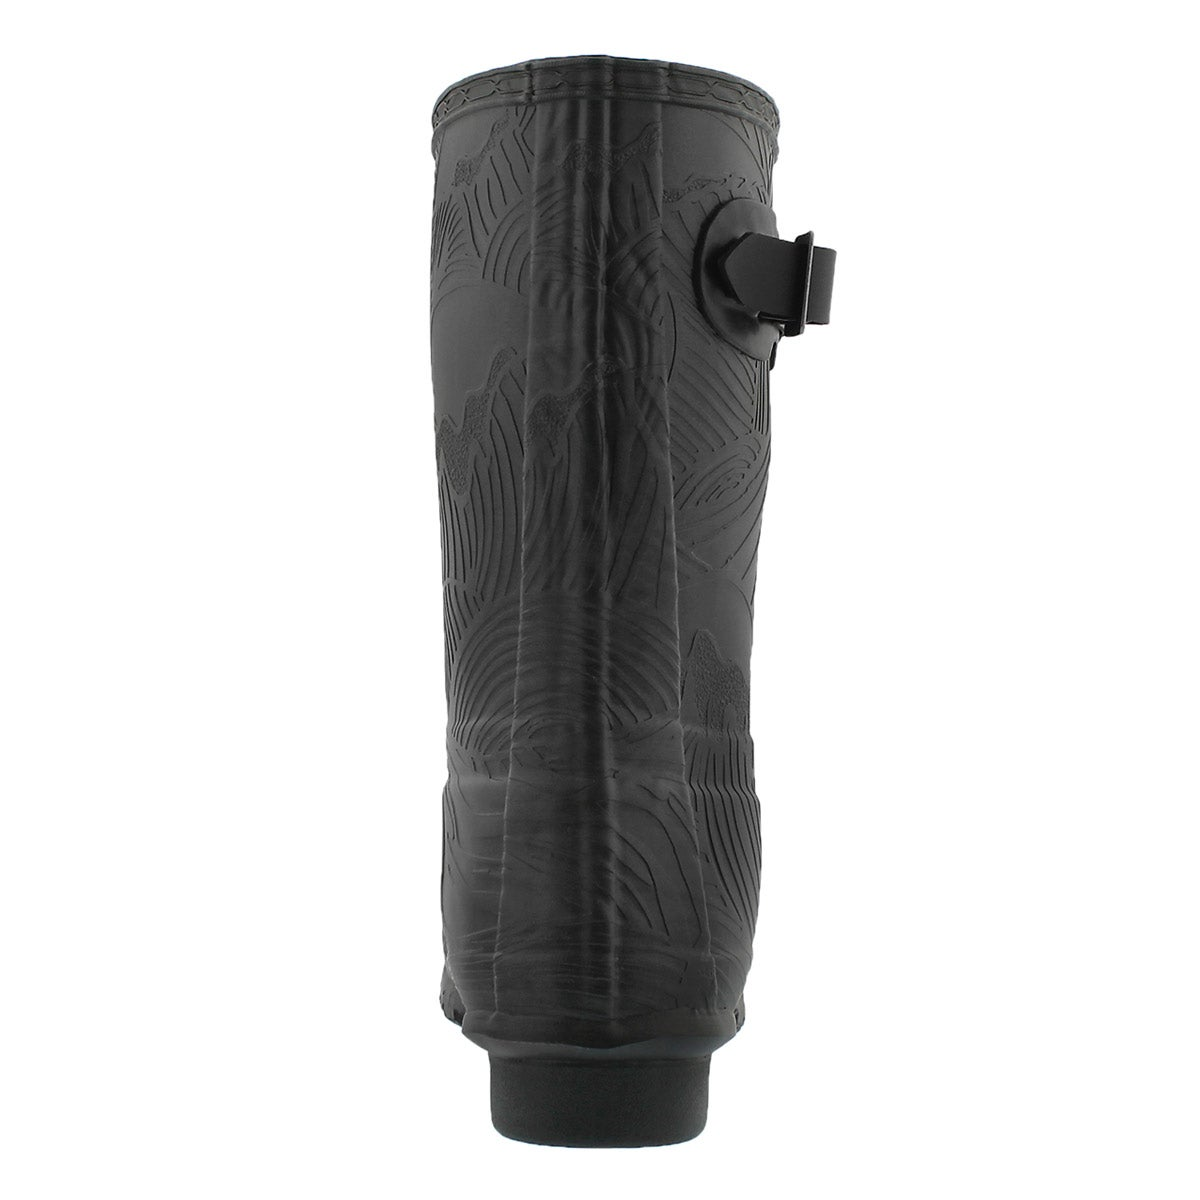 Lds OriginalShrtWaveTexture blk rainboot